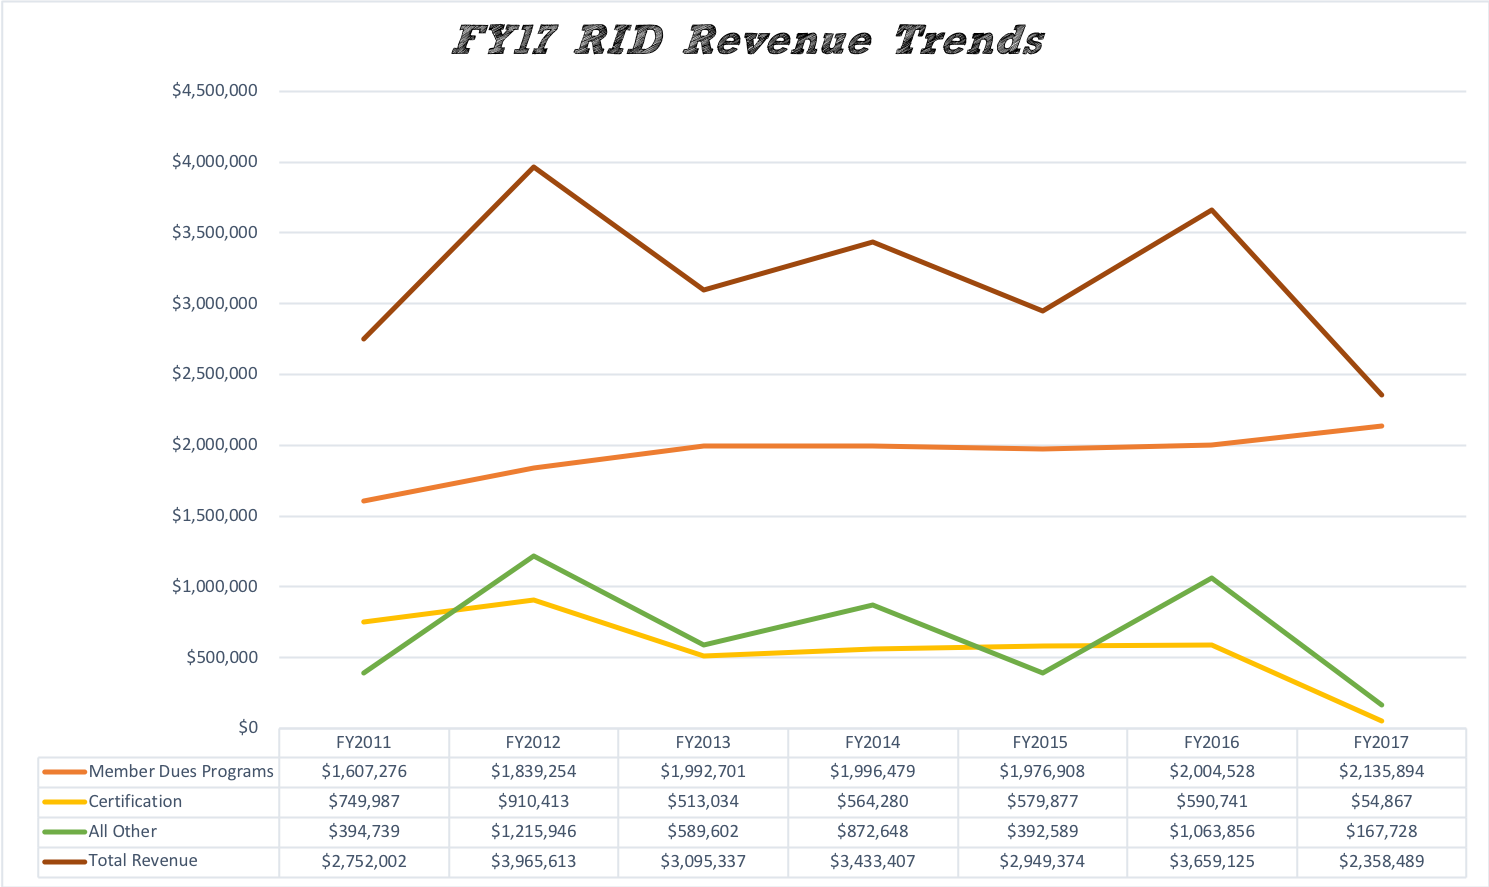 FY17 RID Revenue Trends